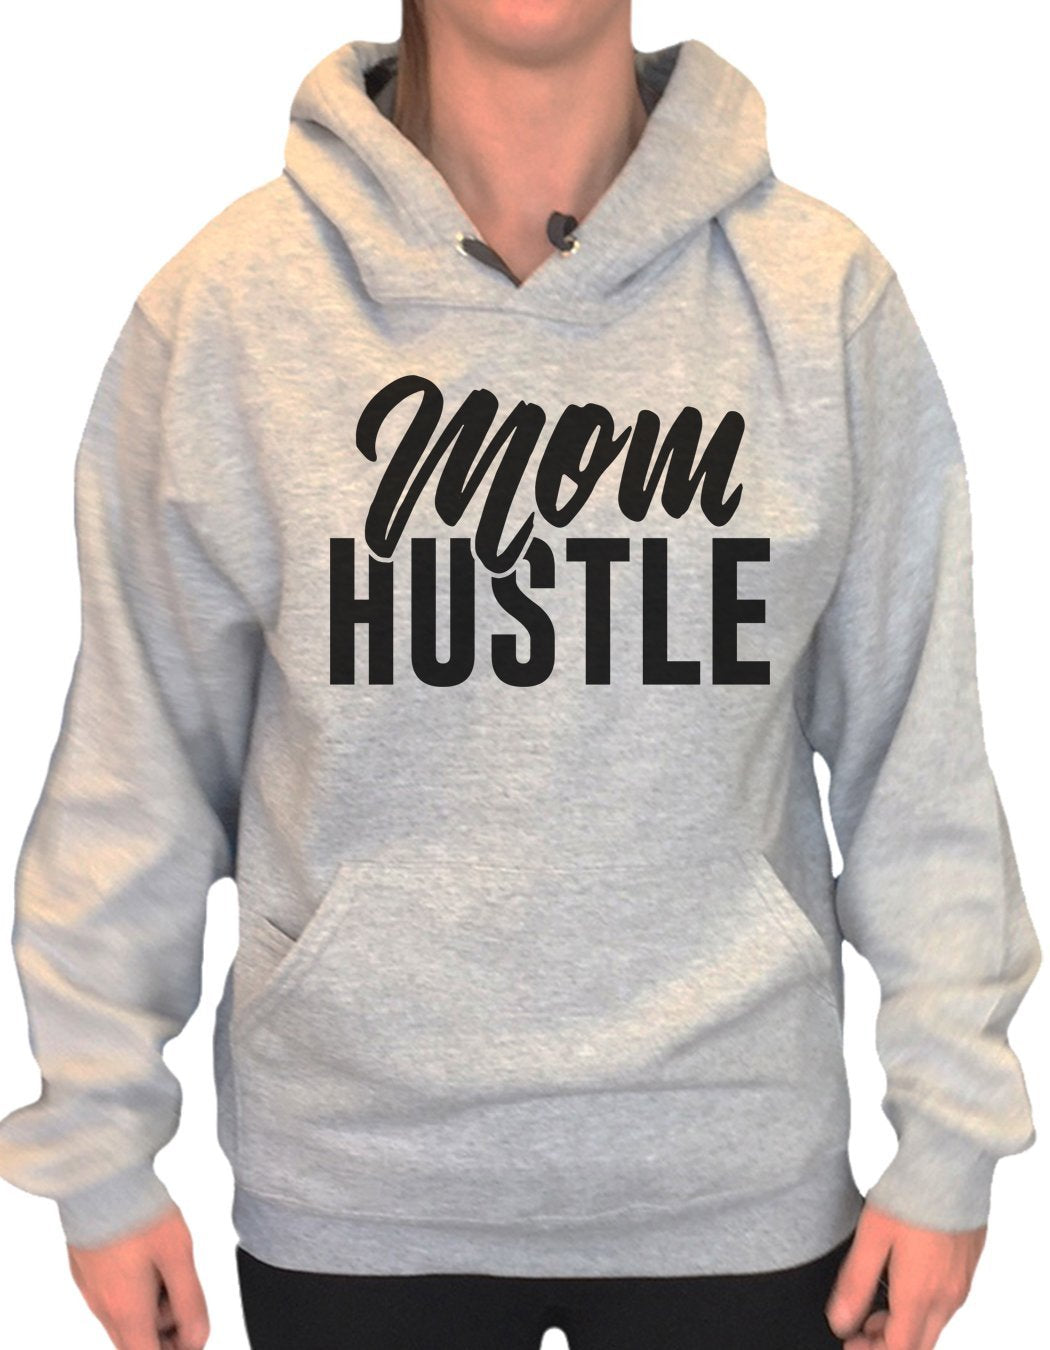 UNISEX HOODIE - Mom Hustle - FUNNY MENS AND WOMENS HOODED SWEATSHIRTS - 2178 Funny Shirt Small / Heather Grey